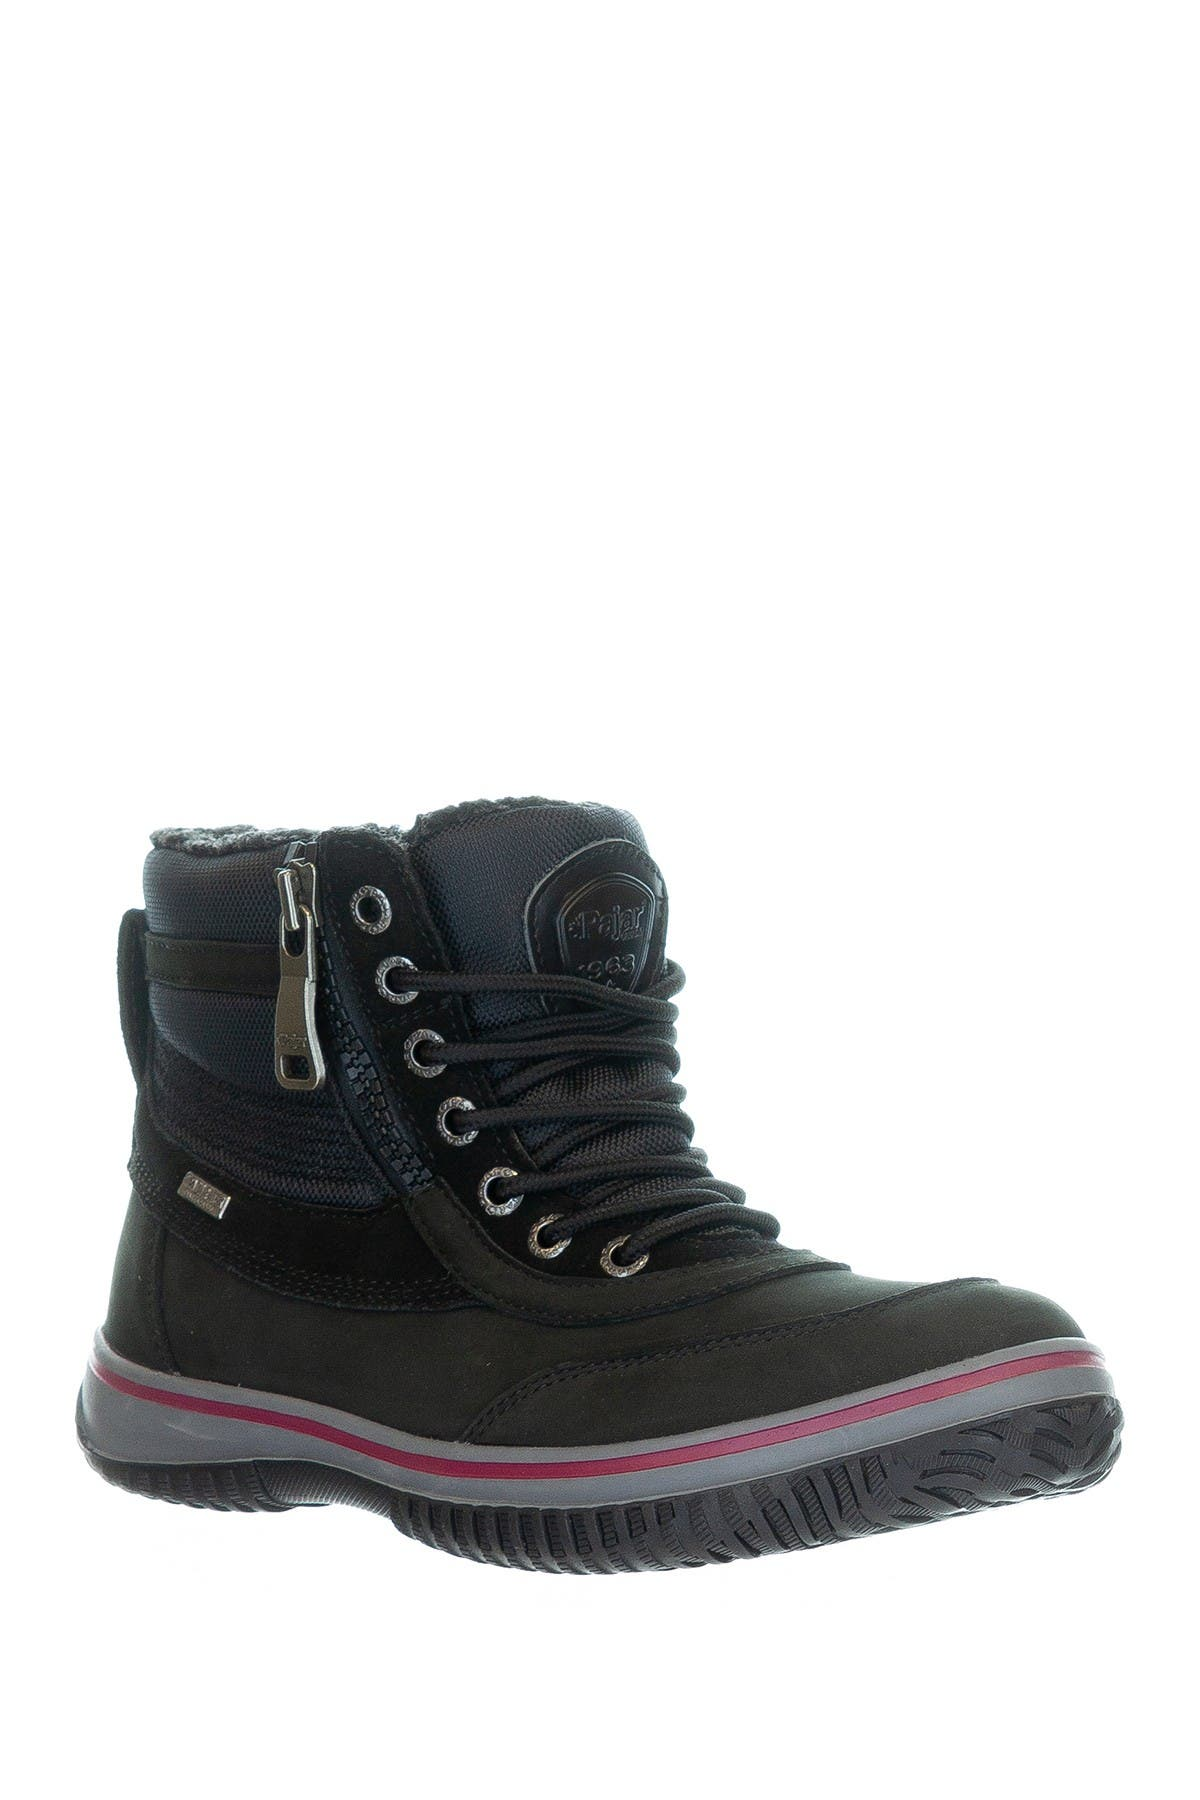 Image of Pajar Gearson Faux Shearling Lined Waterproof Lace-Up Boot